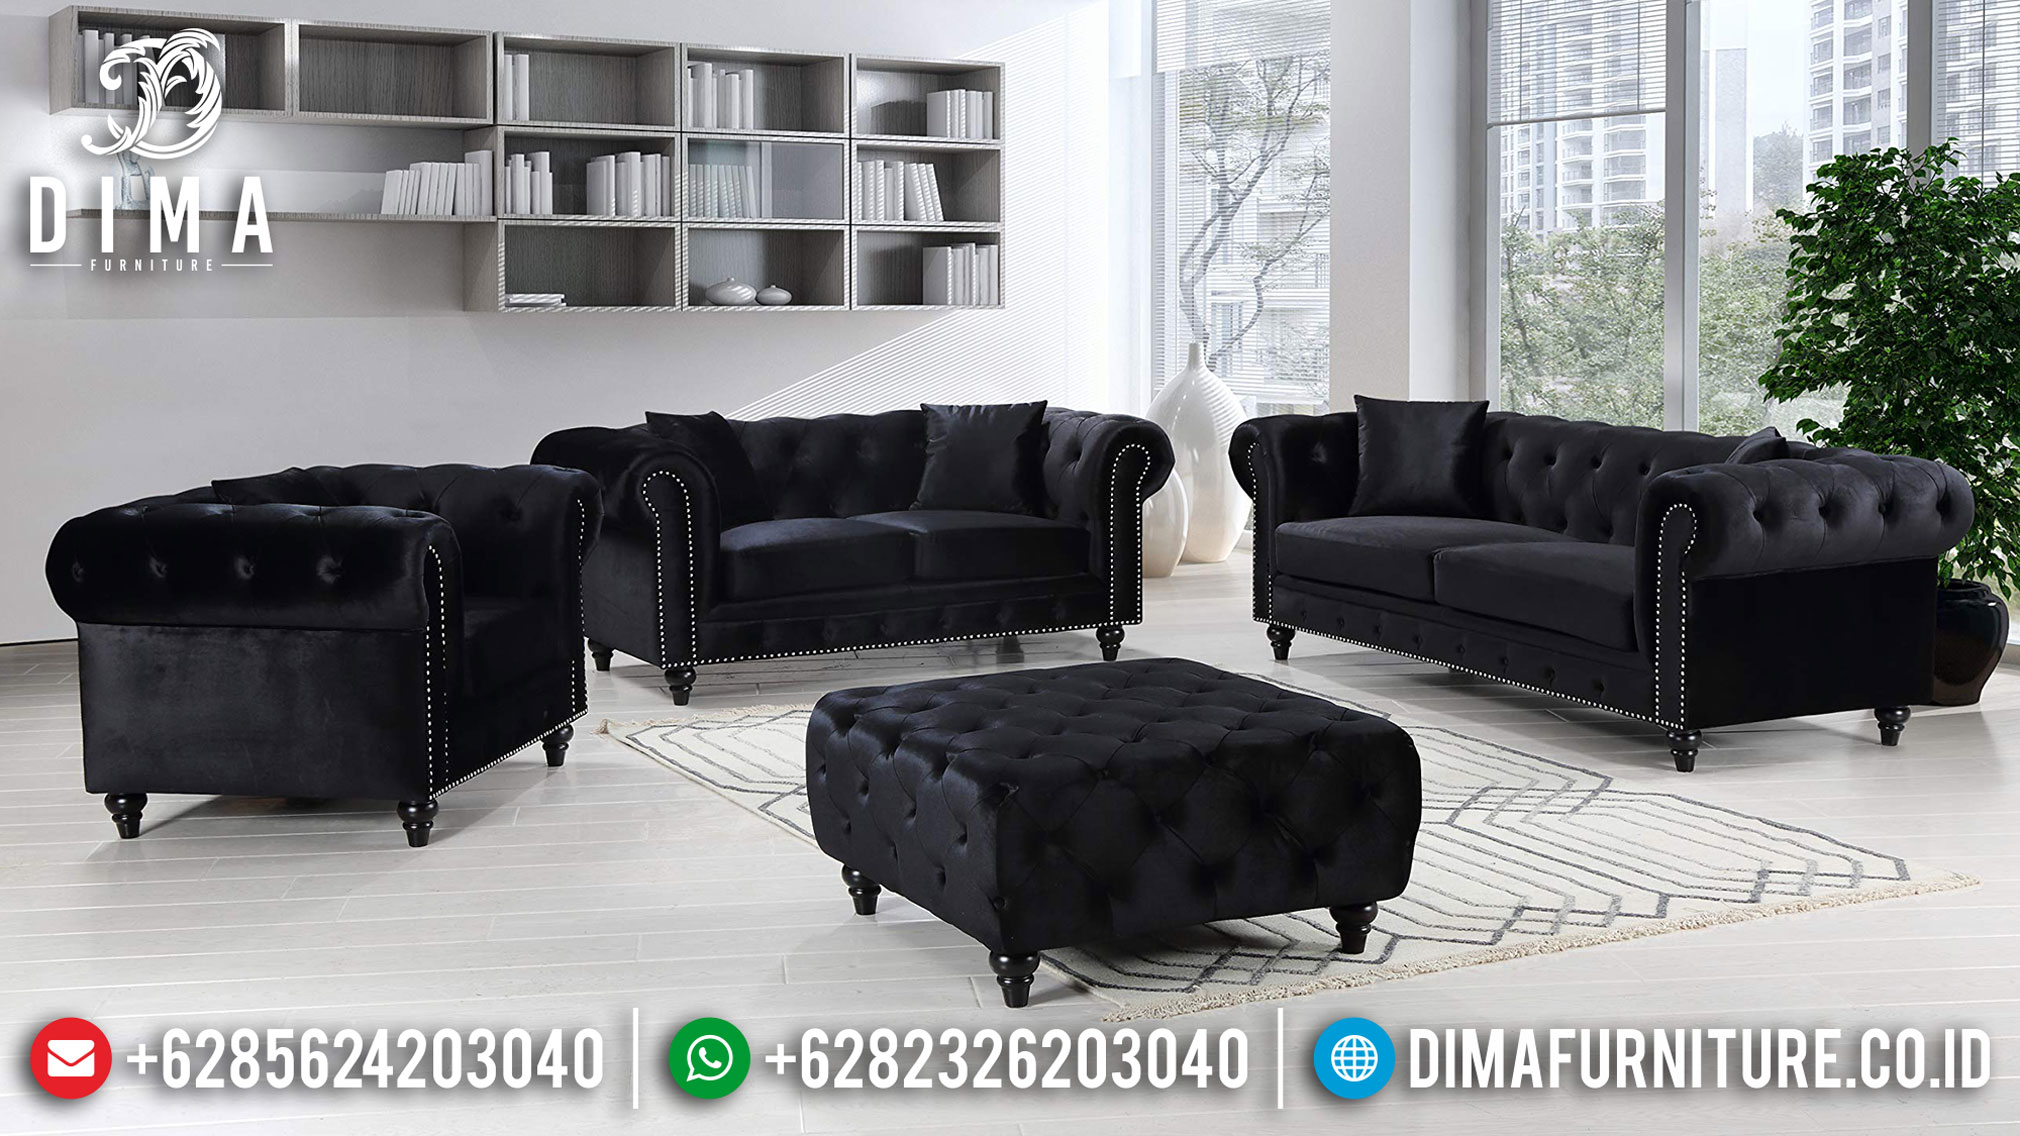 Sofa Tamu Jepara Chesterfield Model Black Edition Best Quality BT-0861